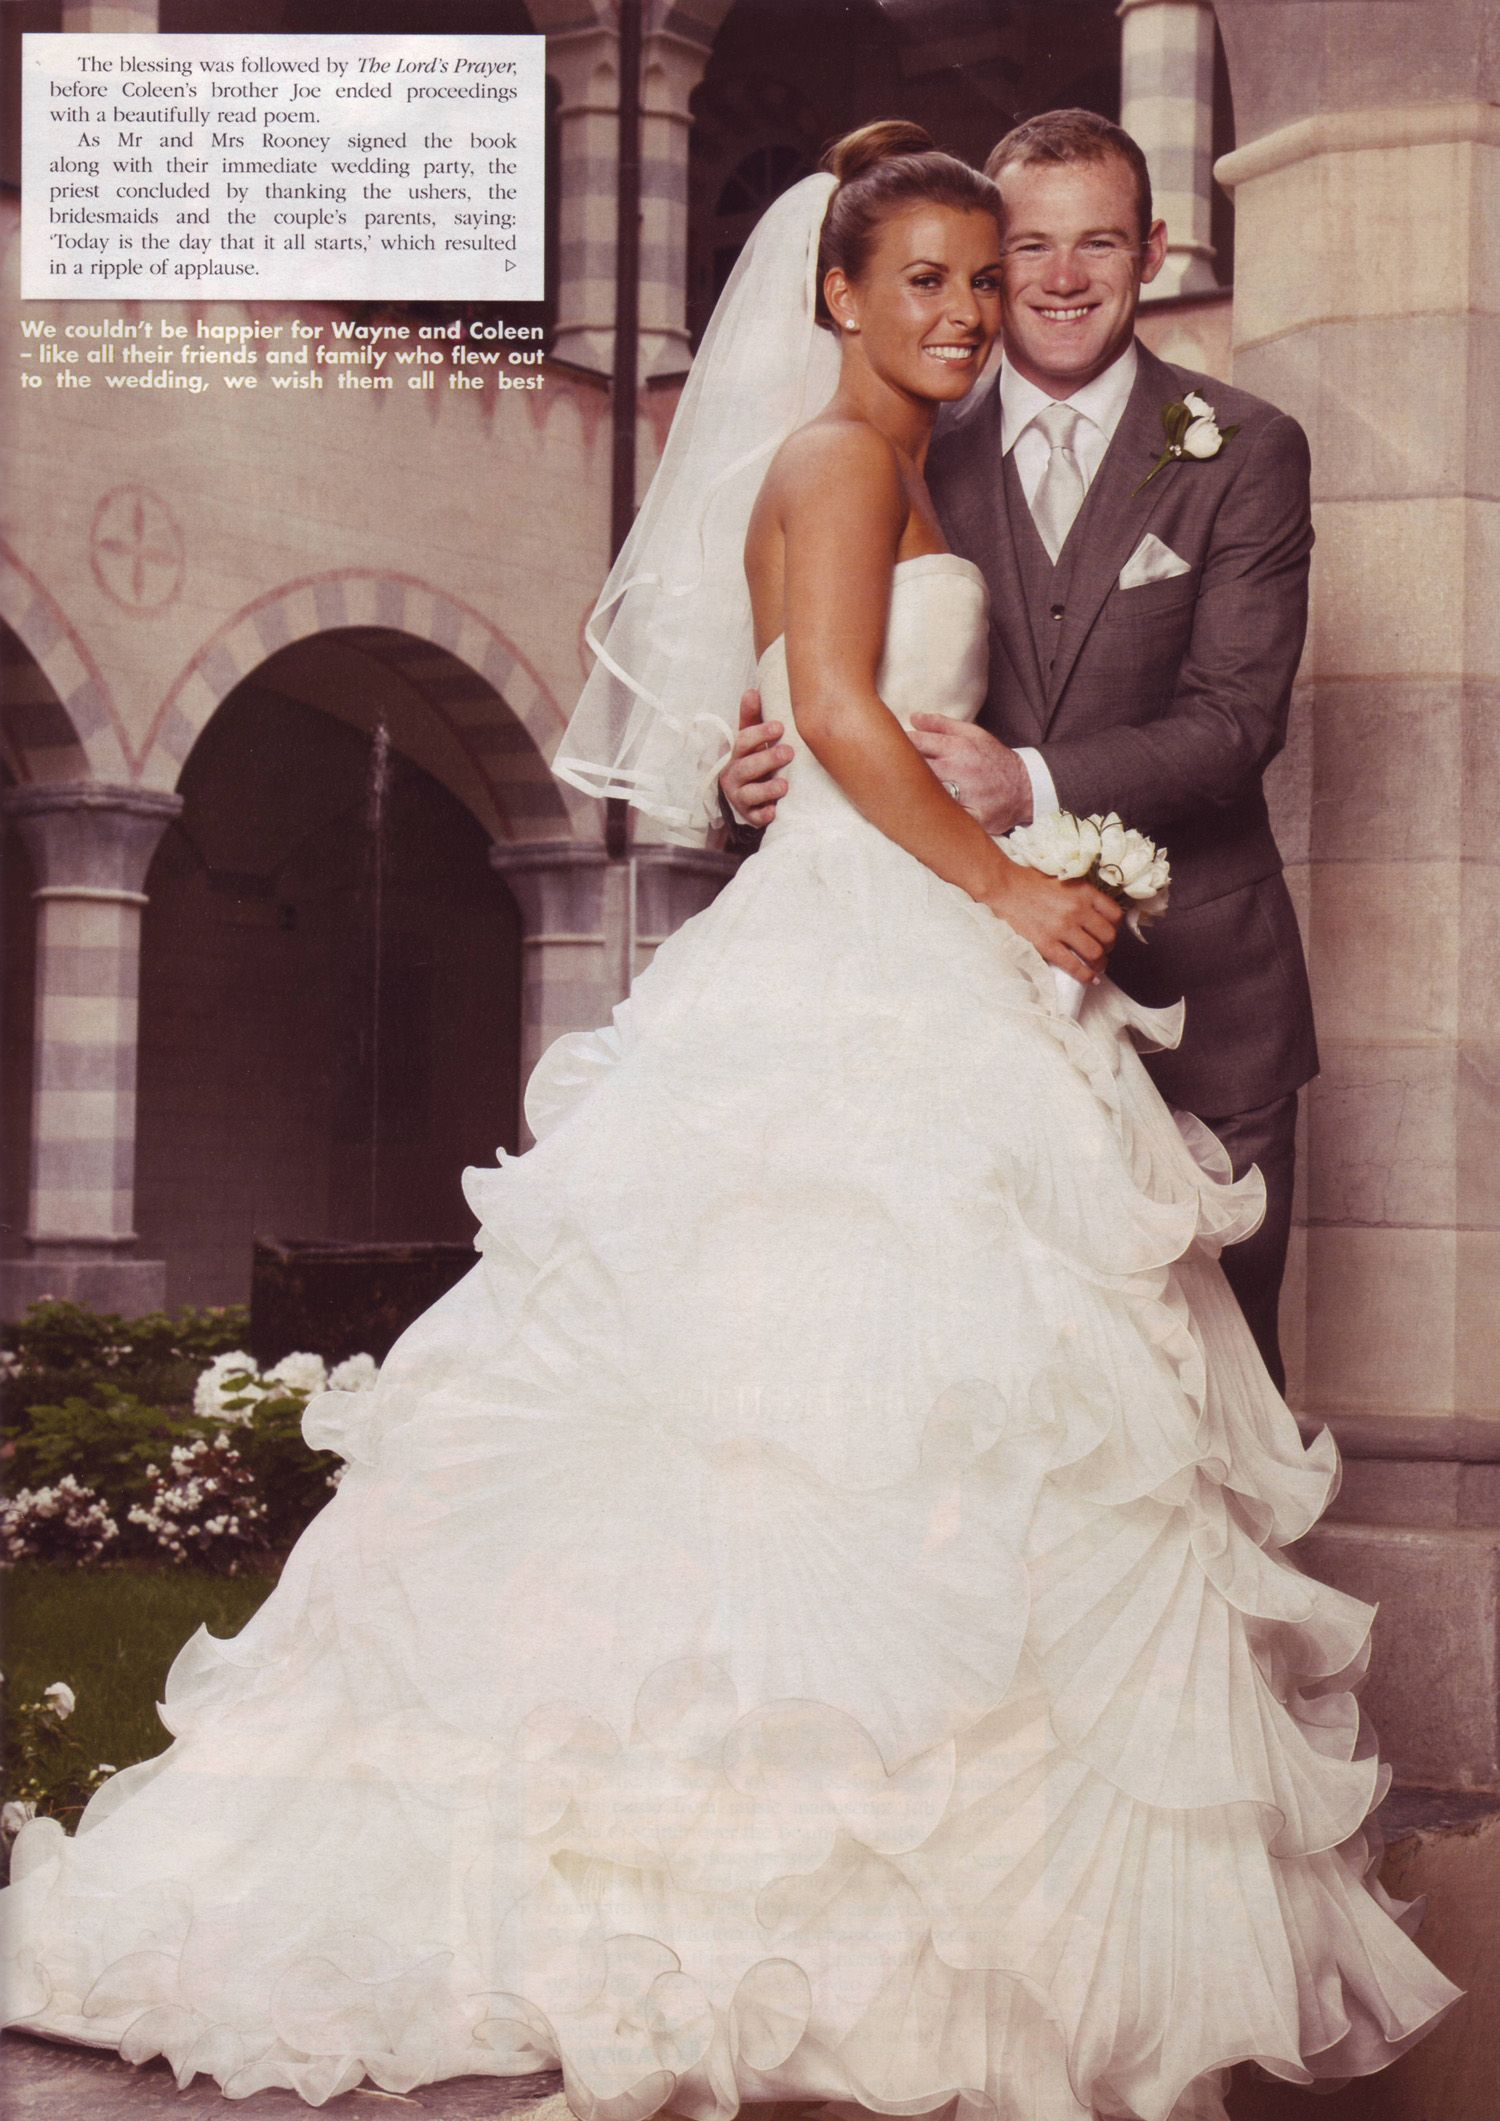 Who has designed Coleen's wedding dress picture